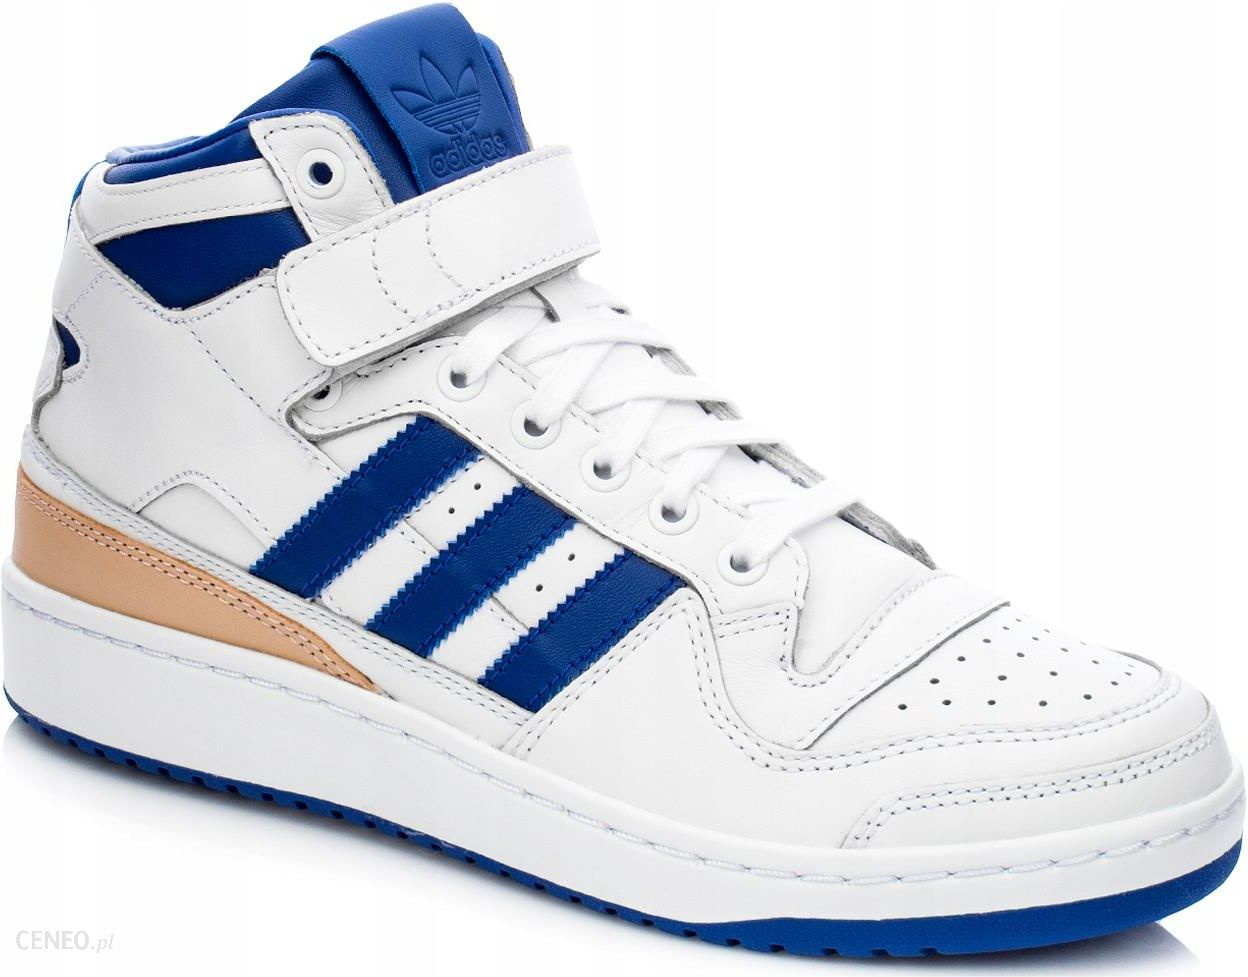 Buty damskie sneakersy adidas Originals Forum Mid BY4412